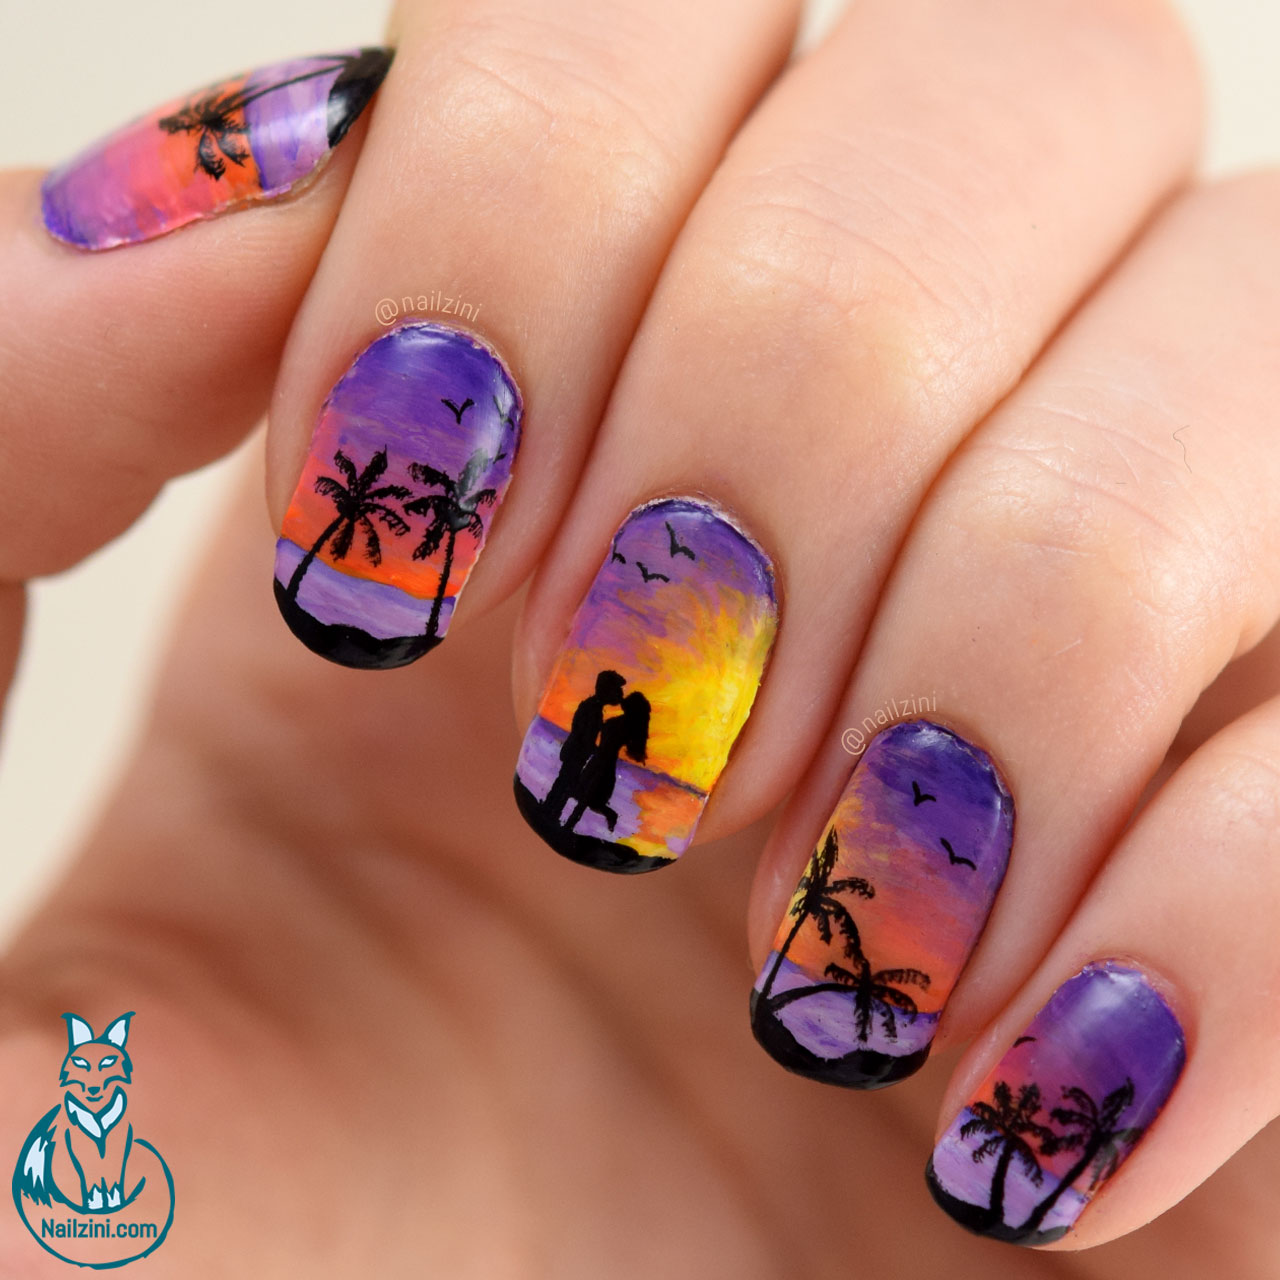 Beach Sunset Valentine Nail Art Nailzini